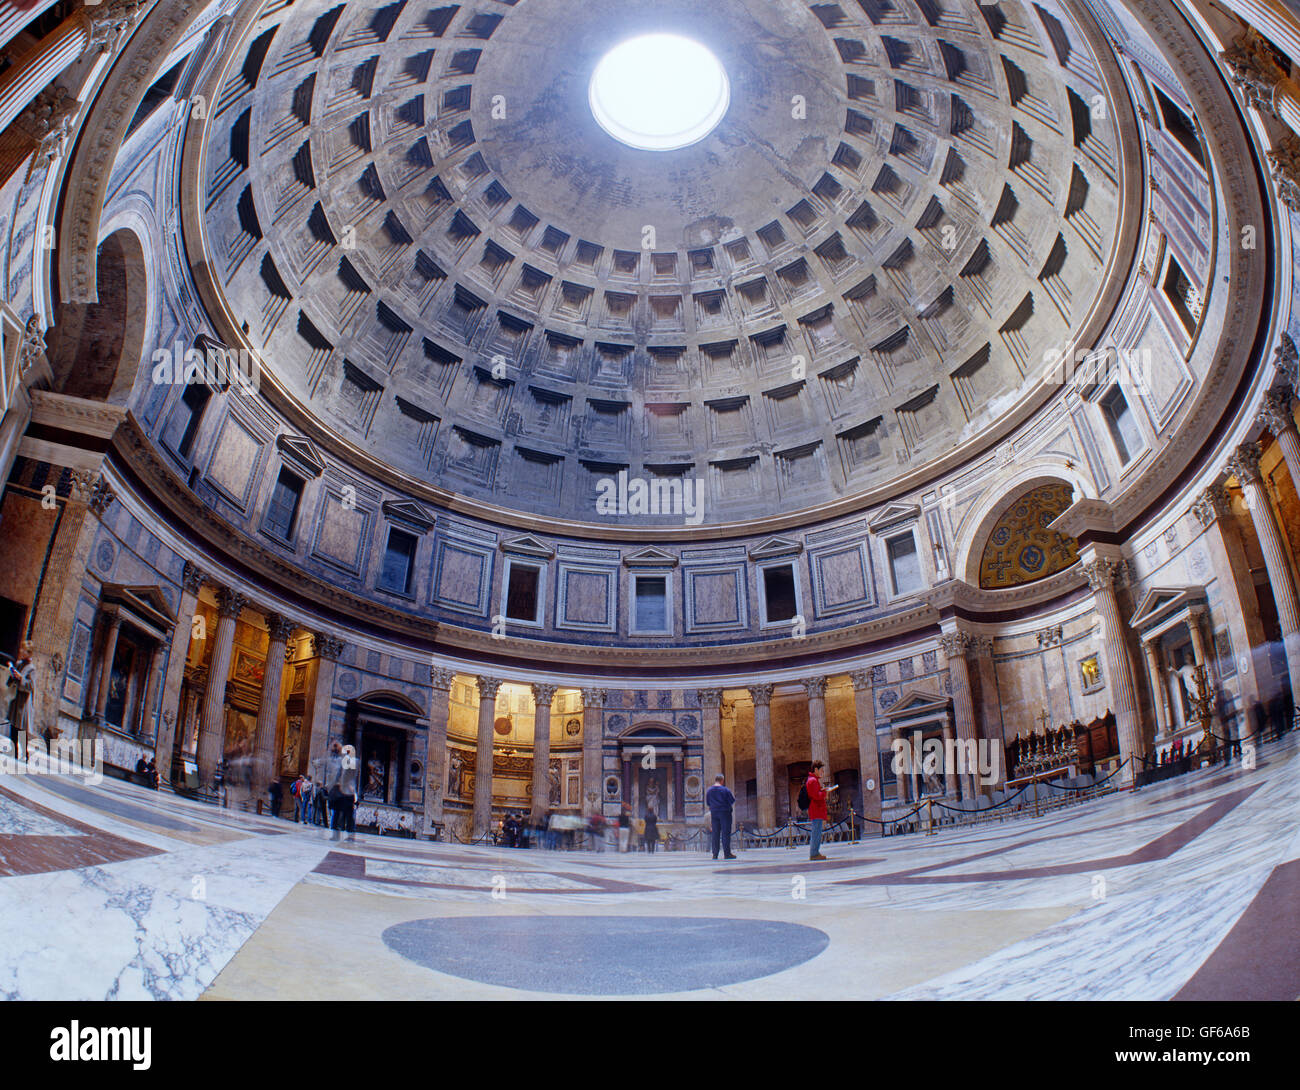 Interior of the Pantheon, Rome, Italy Stock Photo